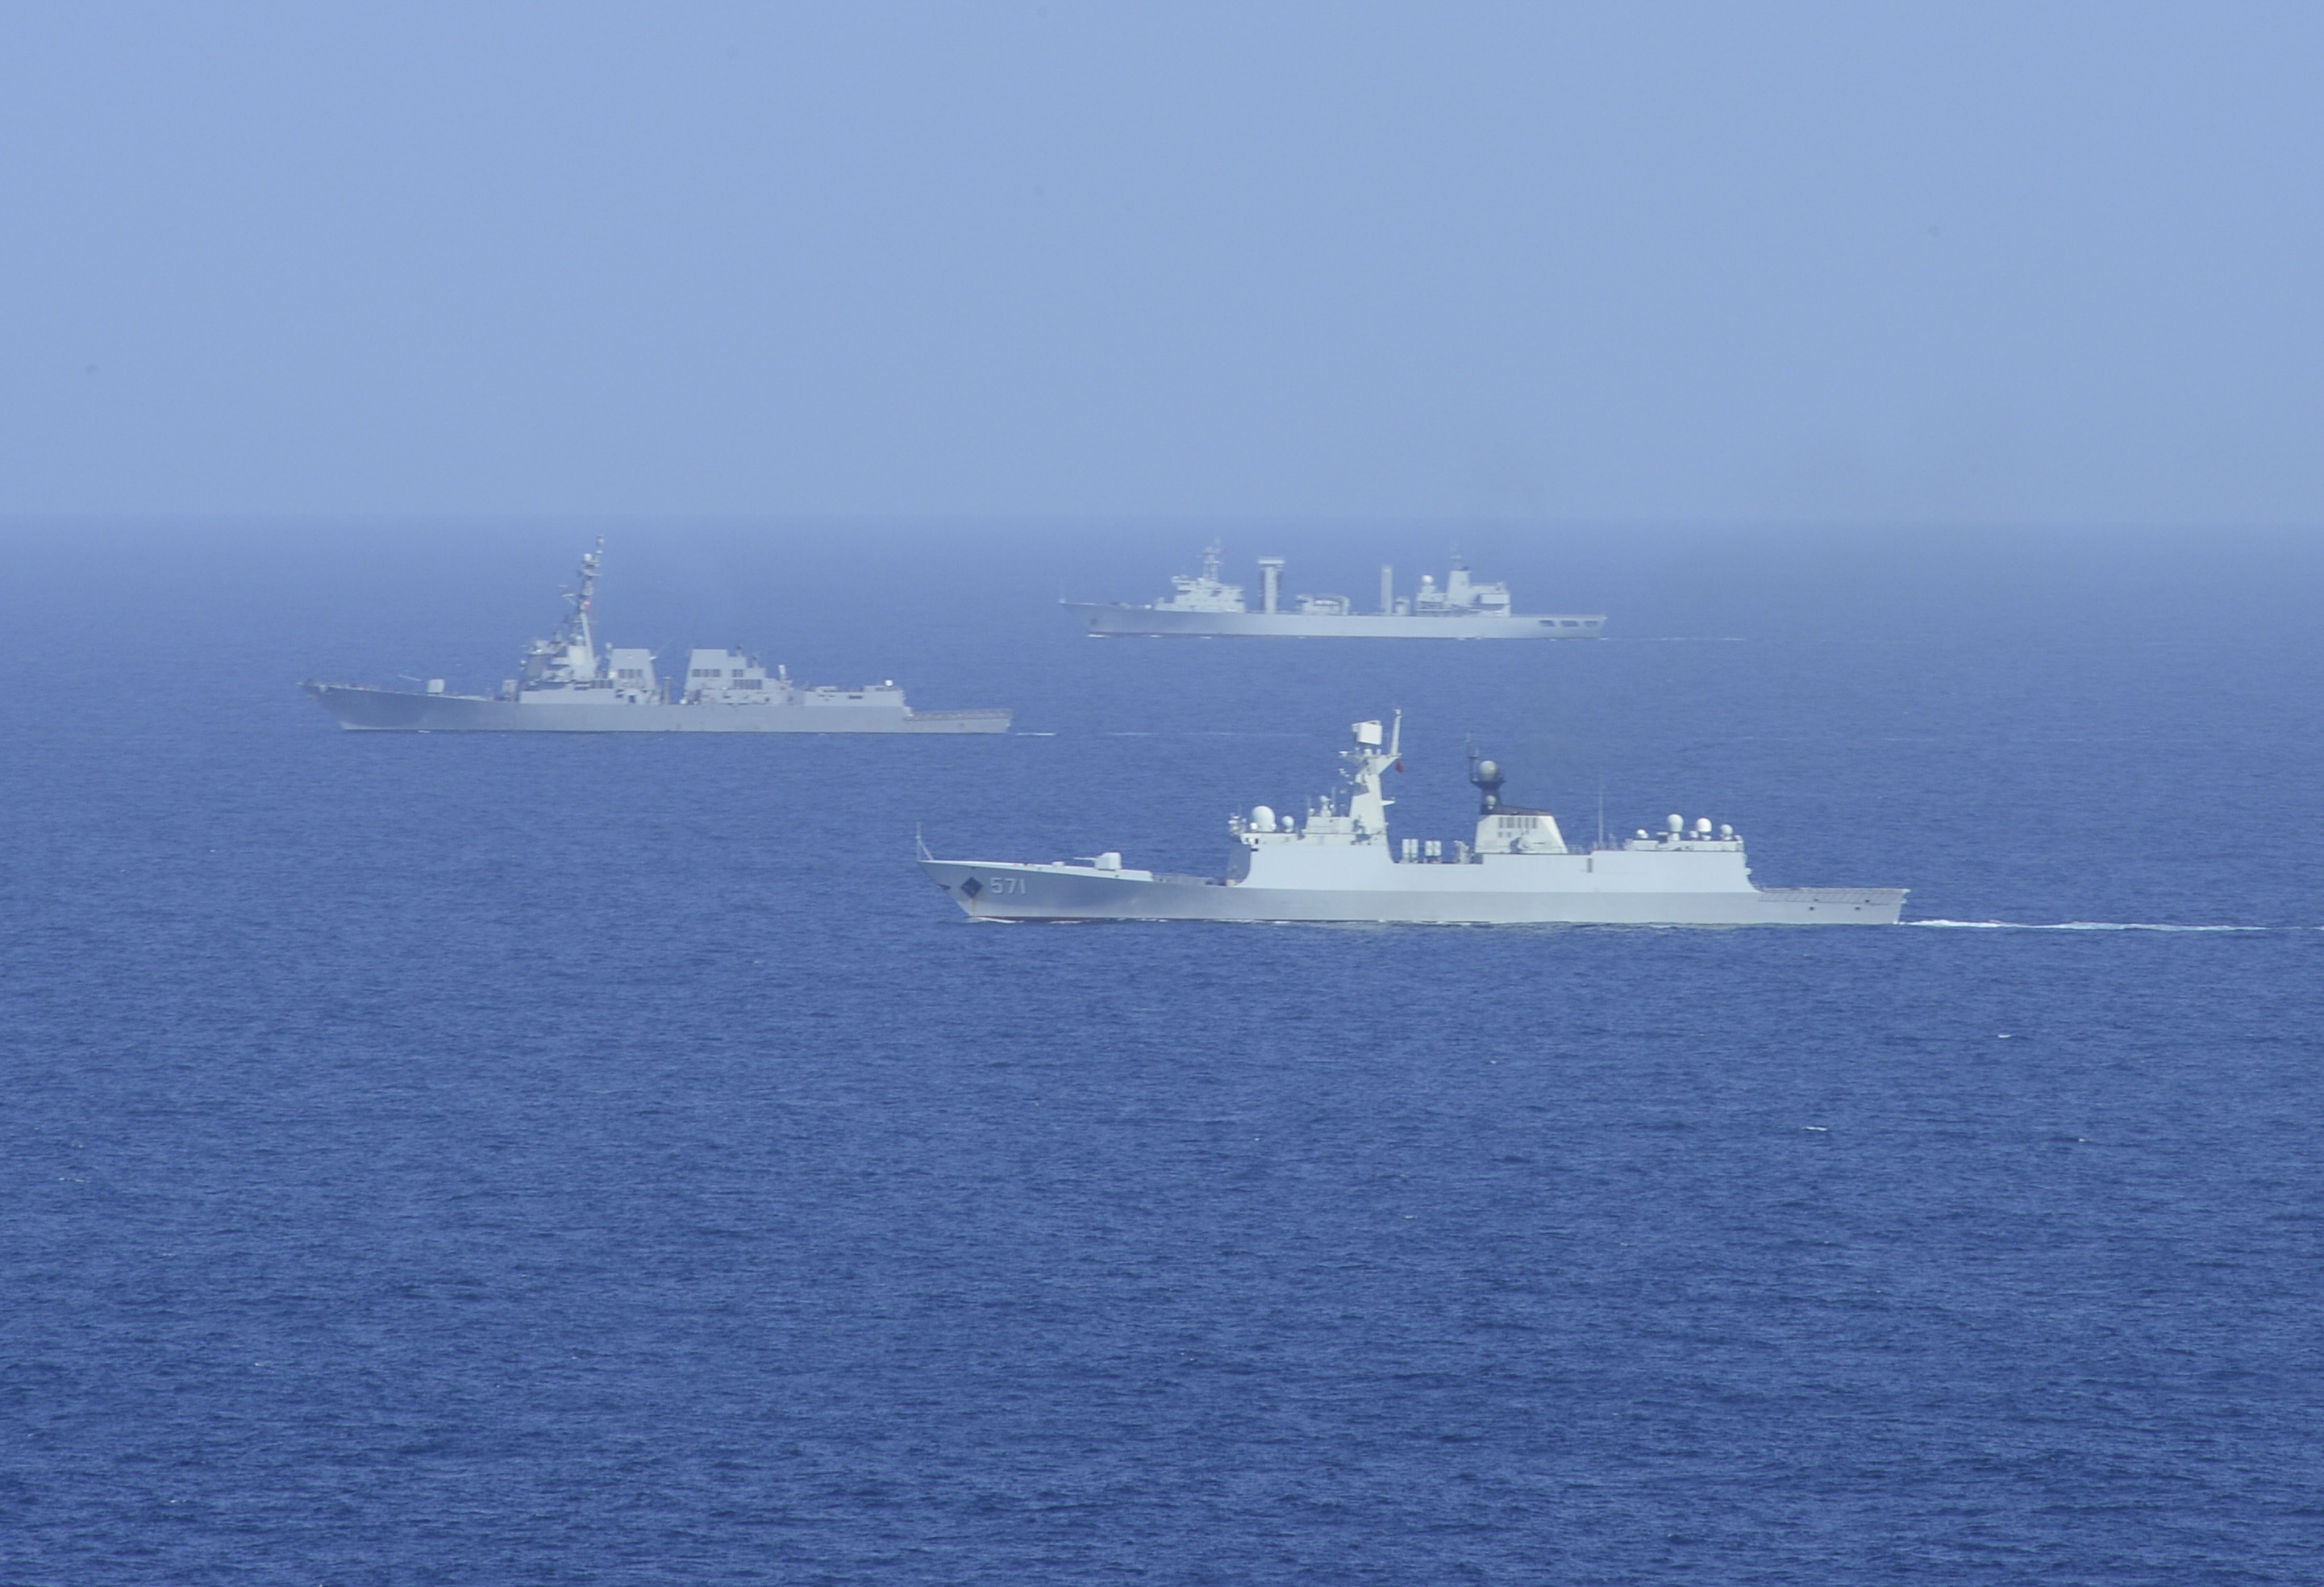 USS Sterett (DDG-104), left, transits alongside the Jiangkai II CNS Yun Chang (FFG571), right, and the Fuchi-class replenishment ship CNS Chao Hu (AOR 890) during U.S. - China Counter-Piracy Exercise 15 on Dec. 11, 2014. US Navy Photo